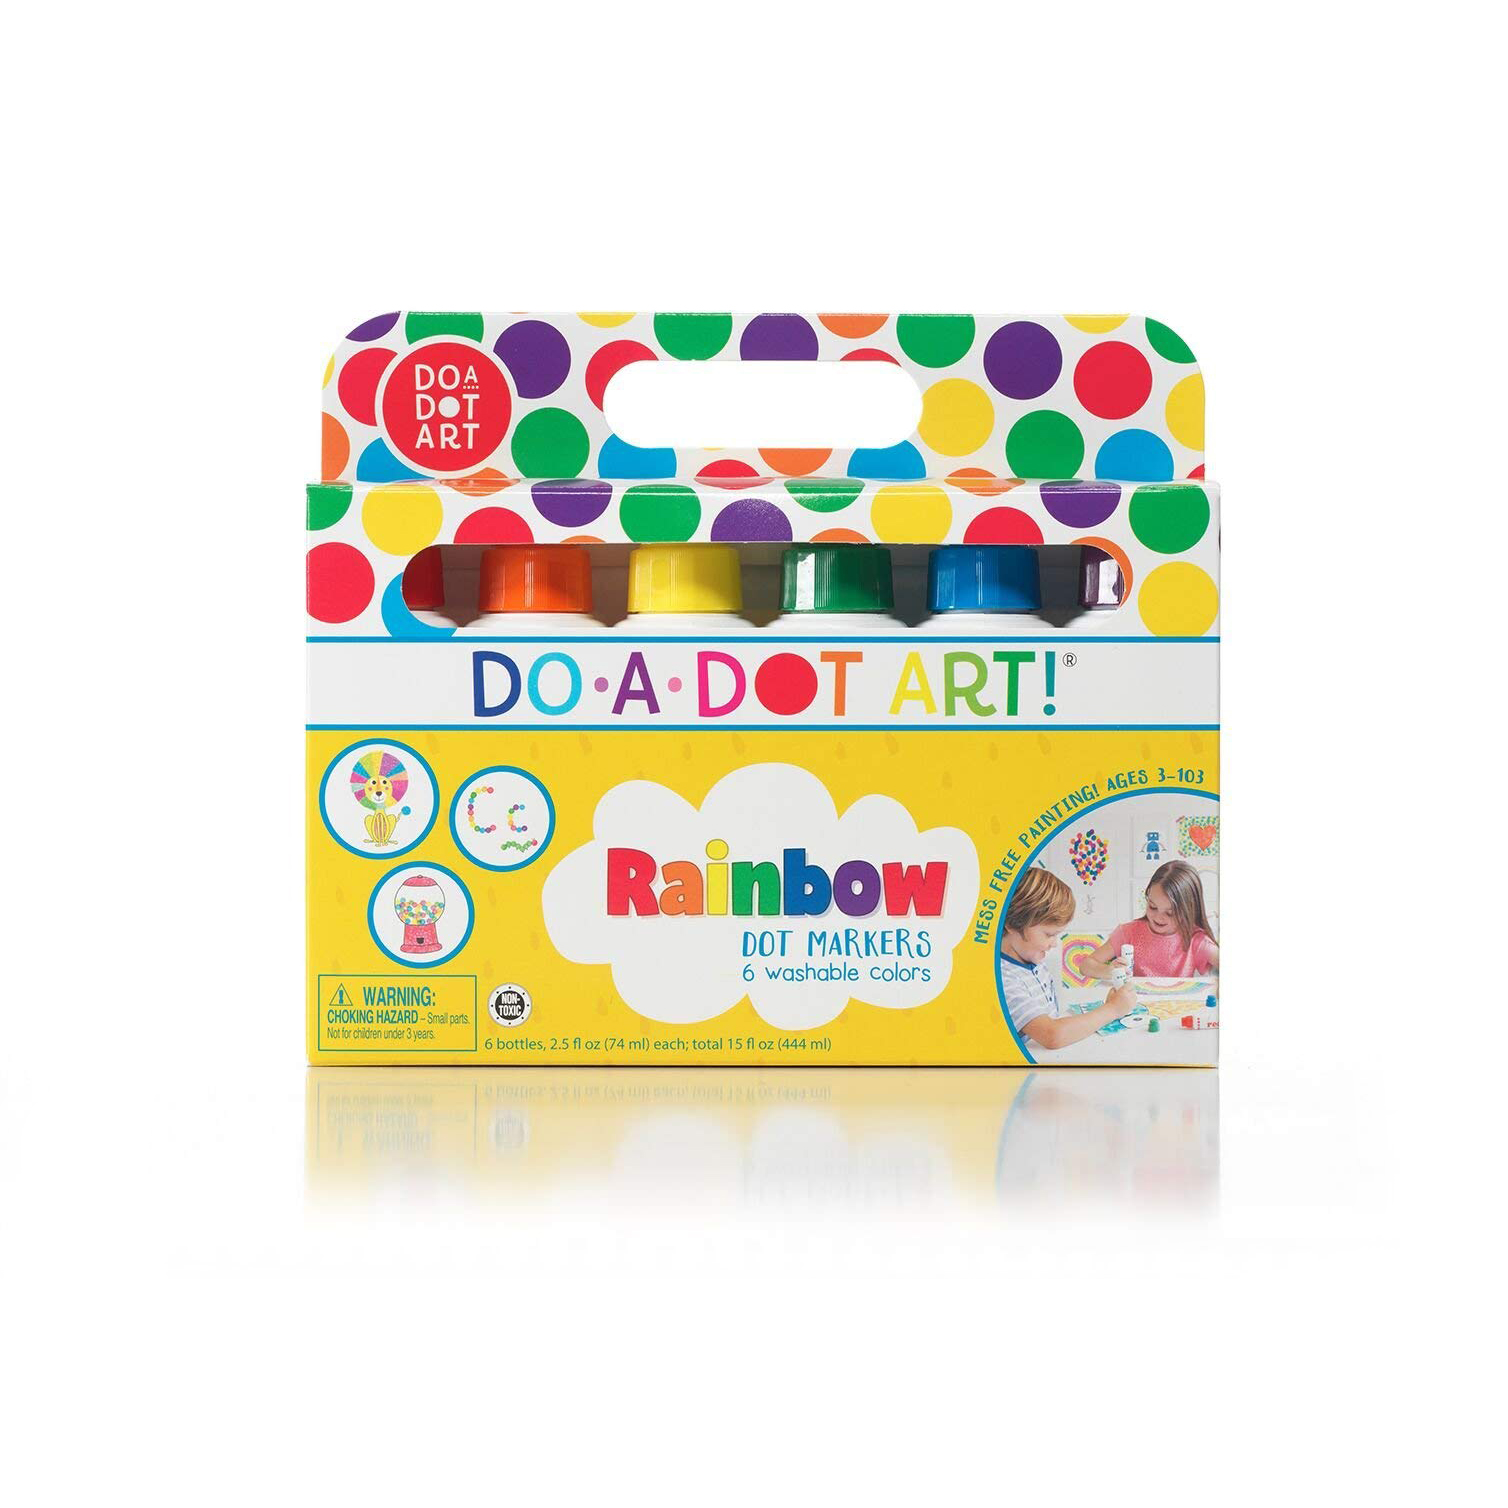 Our favorite dot markers for toddler activities!